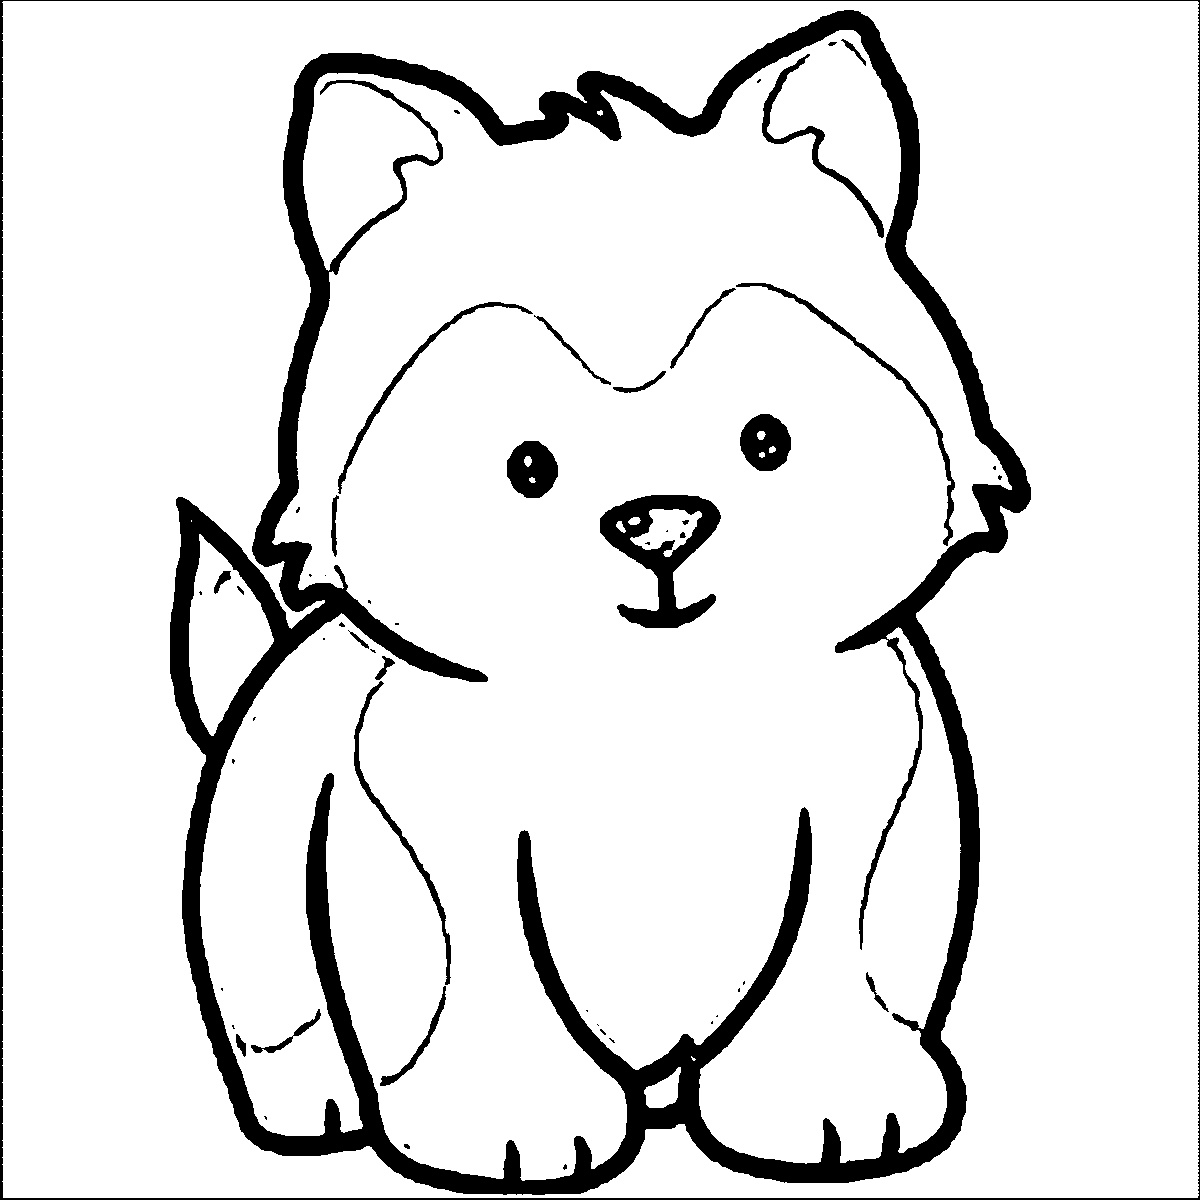 coloring pages of puppies free printable dogs and puppies coloring pages for kids of pages puppies coloring